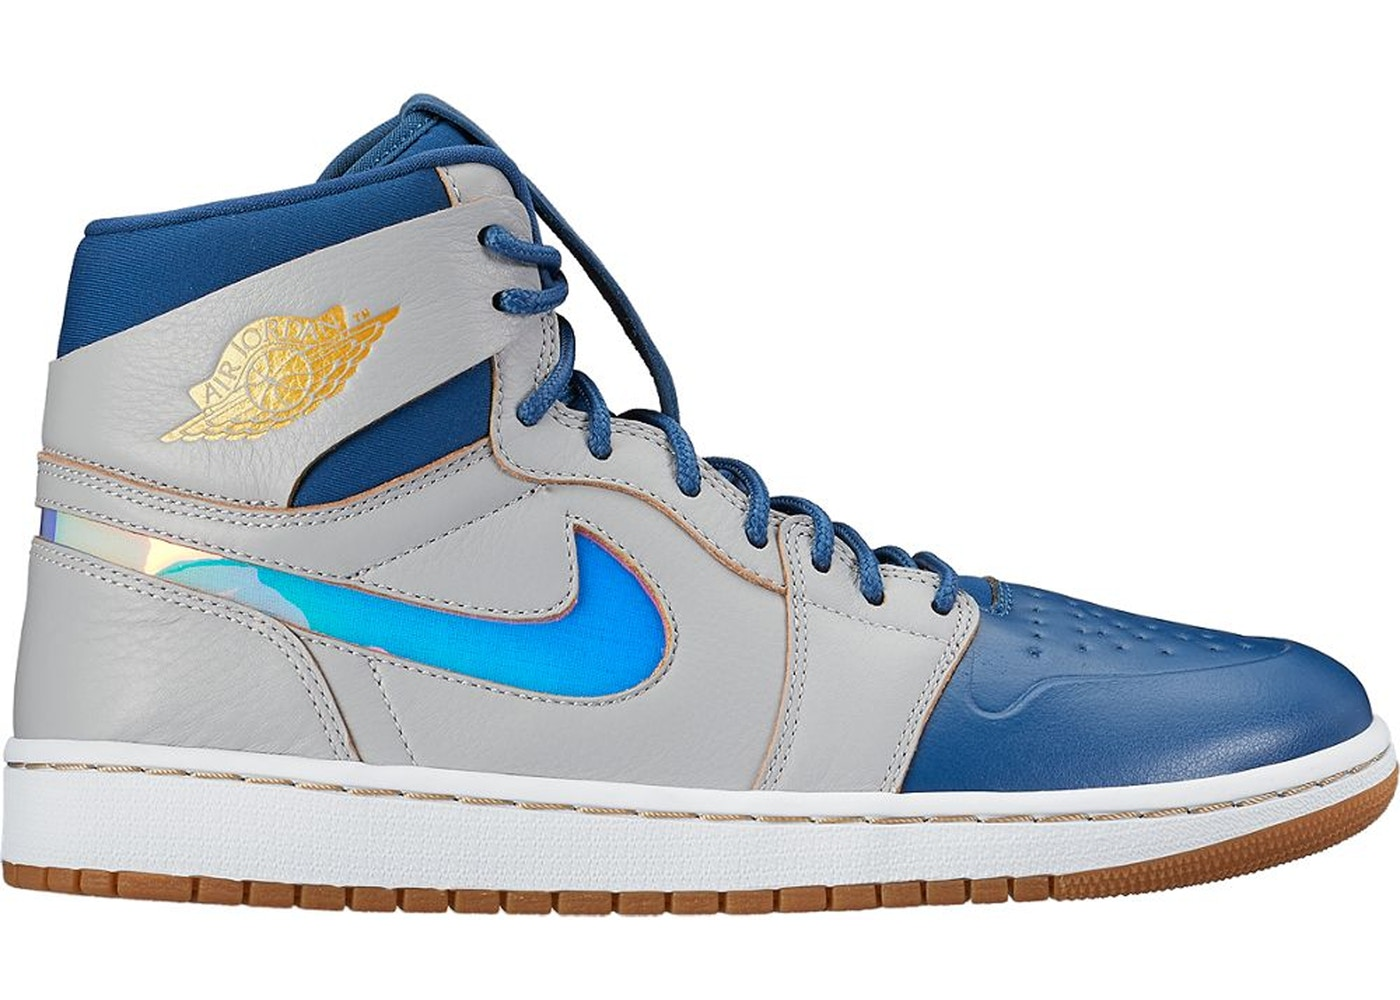 new style 880d0 87921 Jordan 1 Retro High Nouveau Dunk From Above - 819176-009